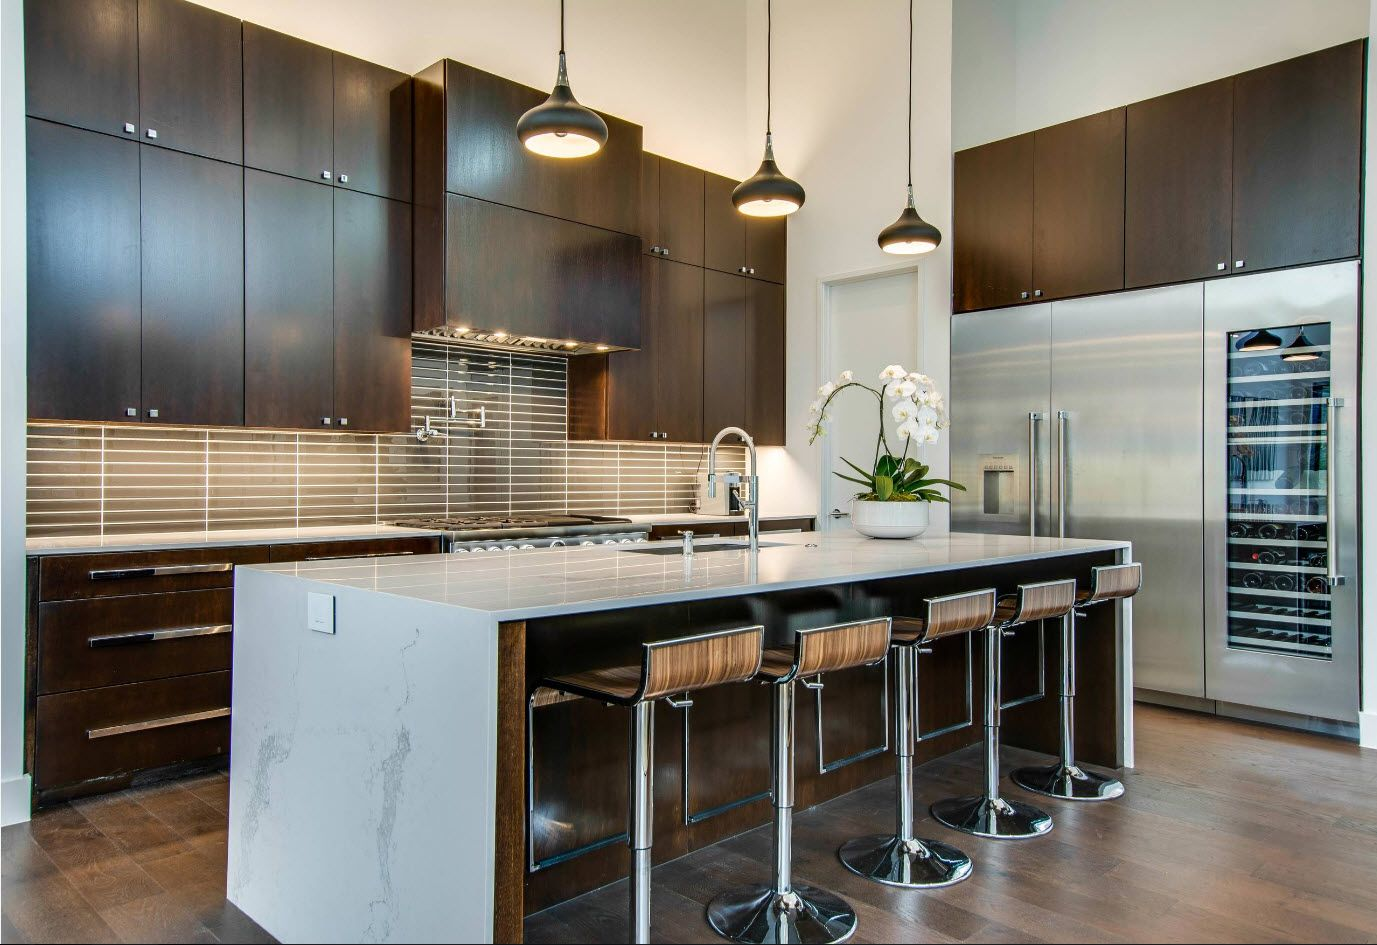 100+ Photo Design Ideas of Modern, Comfortable IKEA Kitchens. Large dining group with bar stools